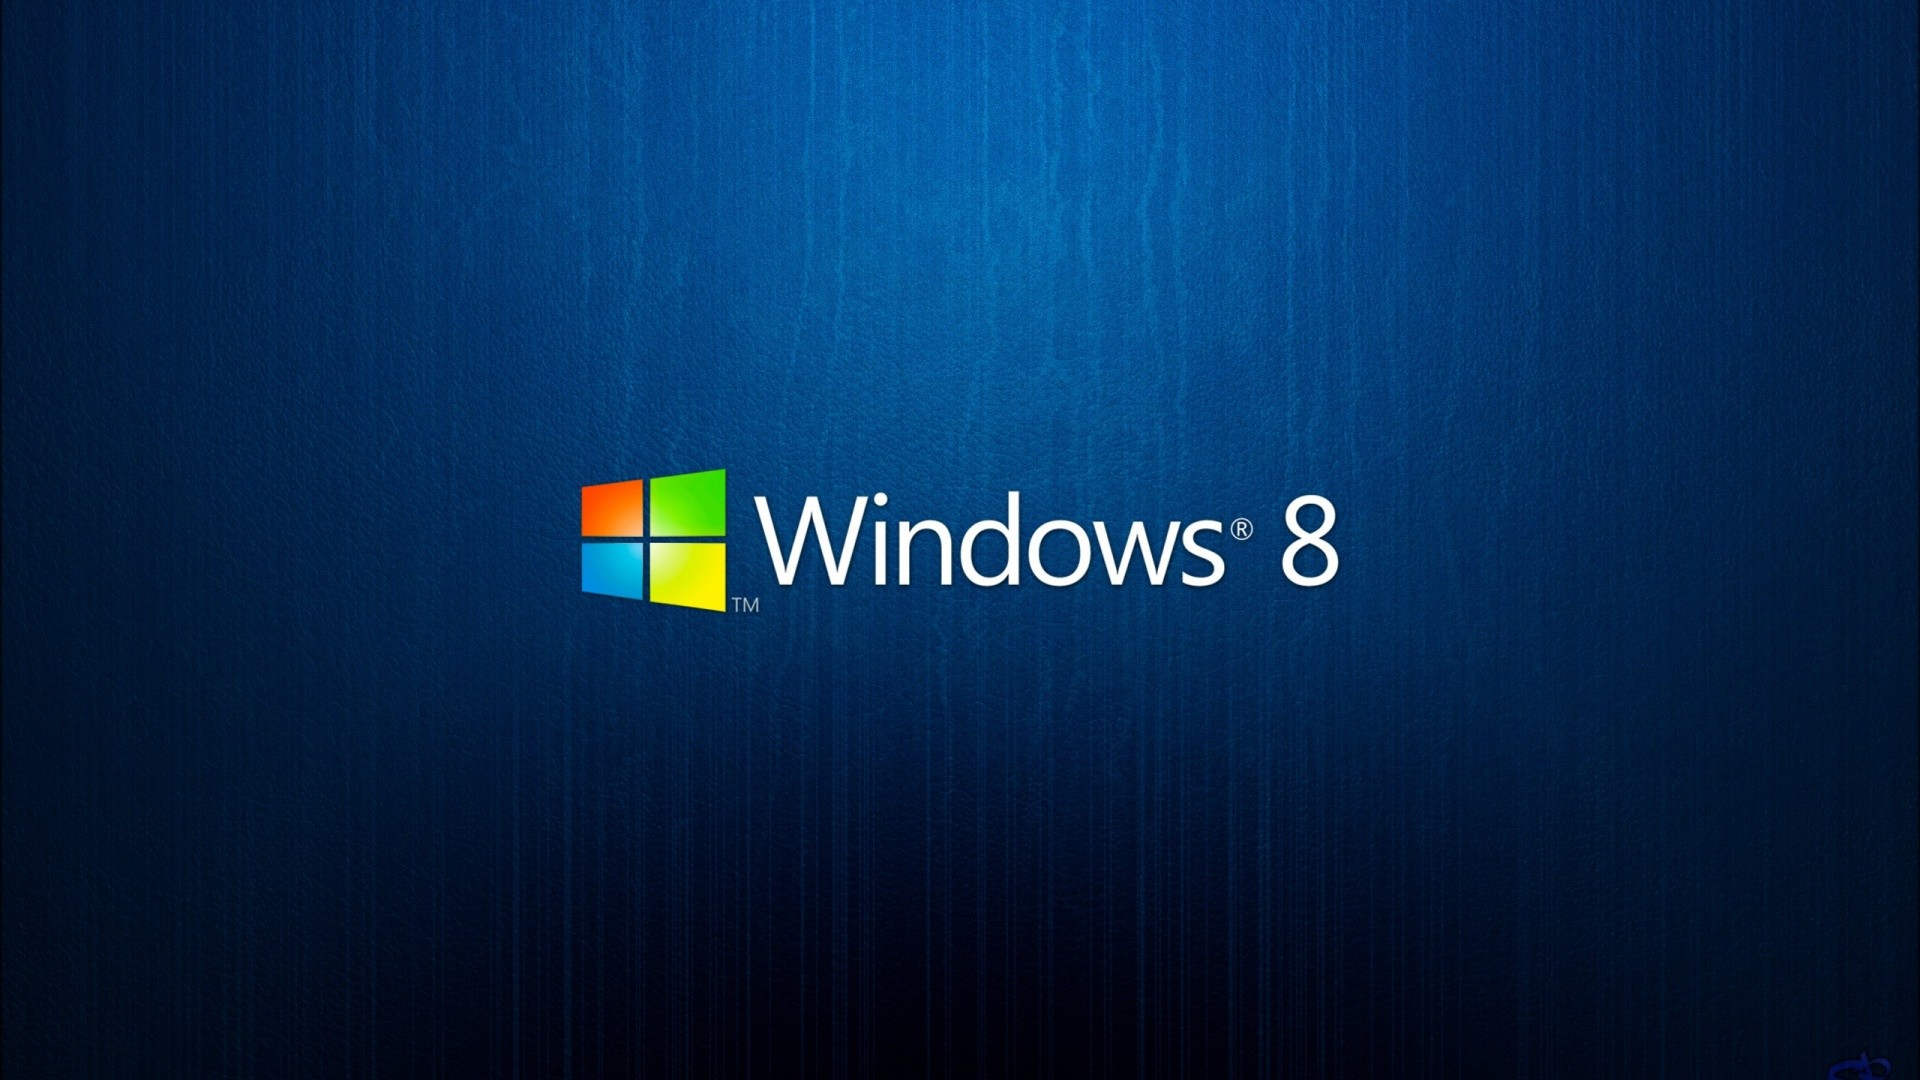 windows 8 full hd wallpaper and background image | 1920x1080 | id:461367